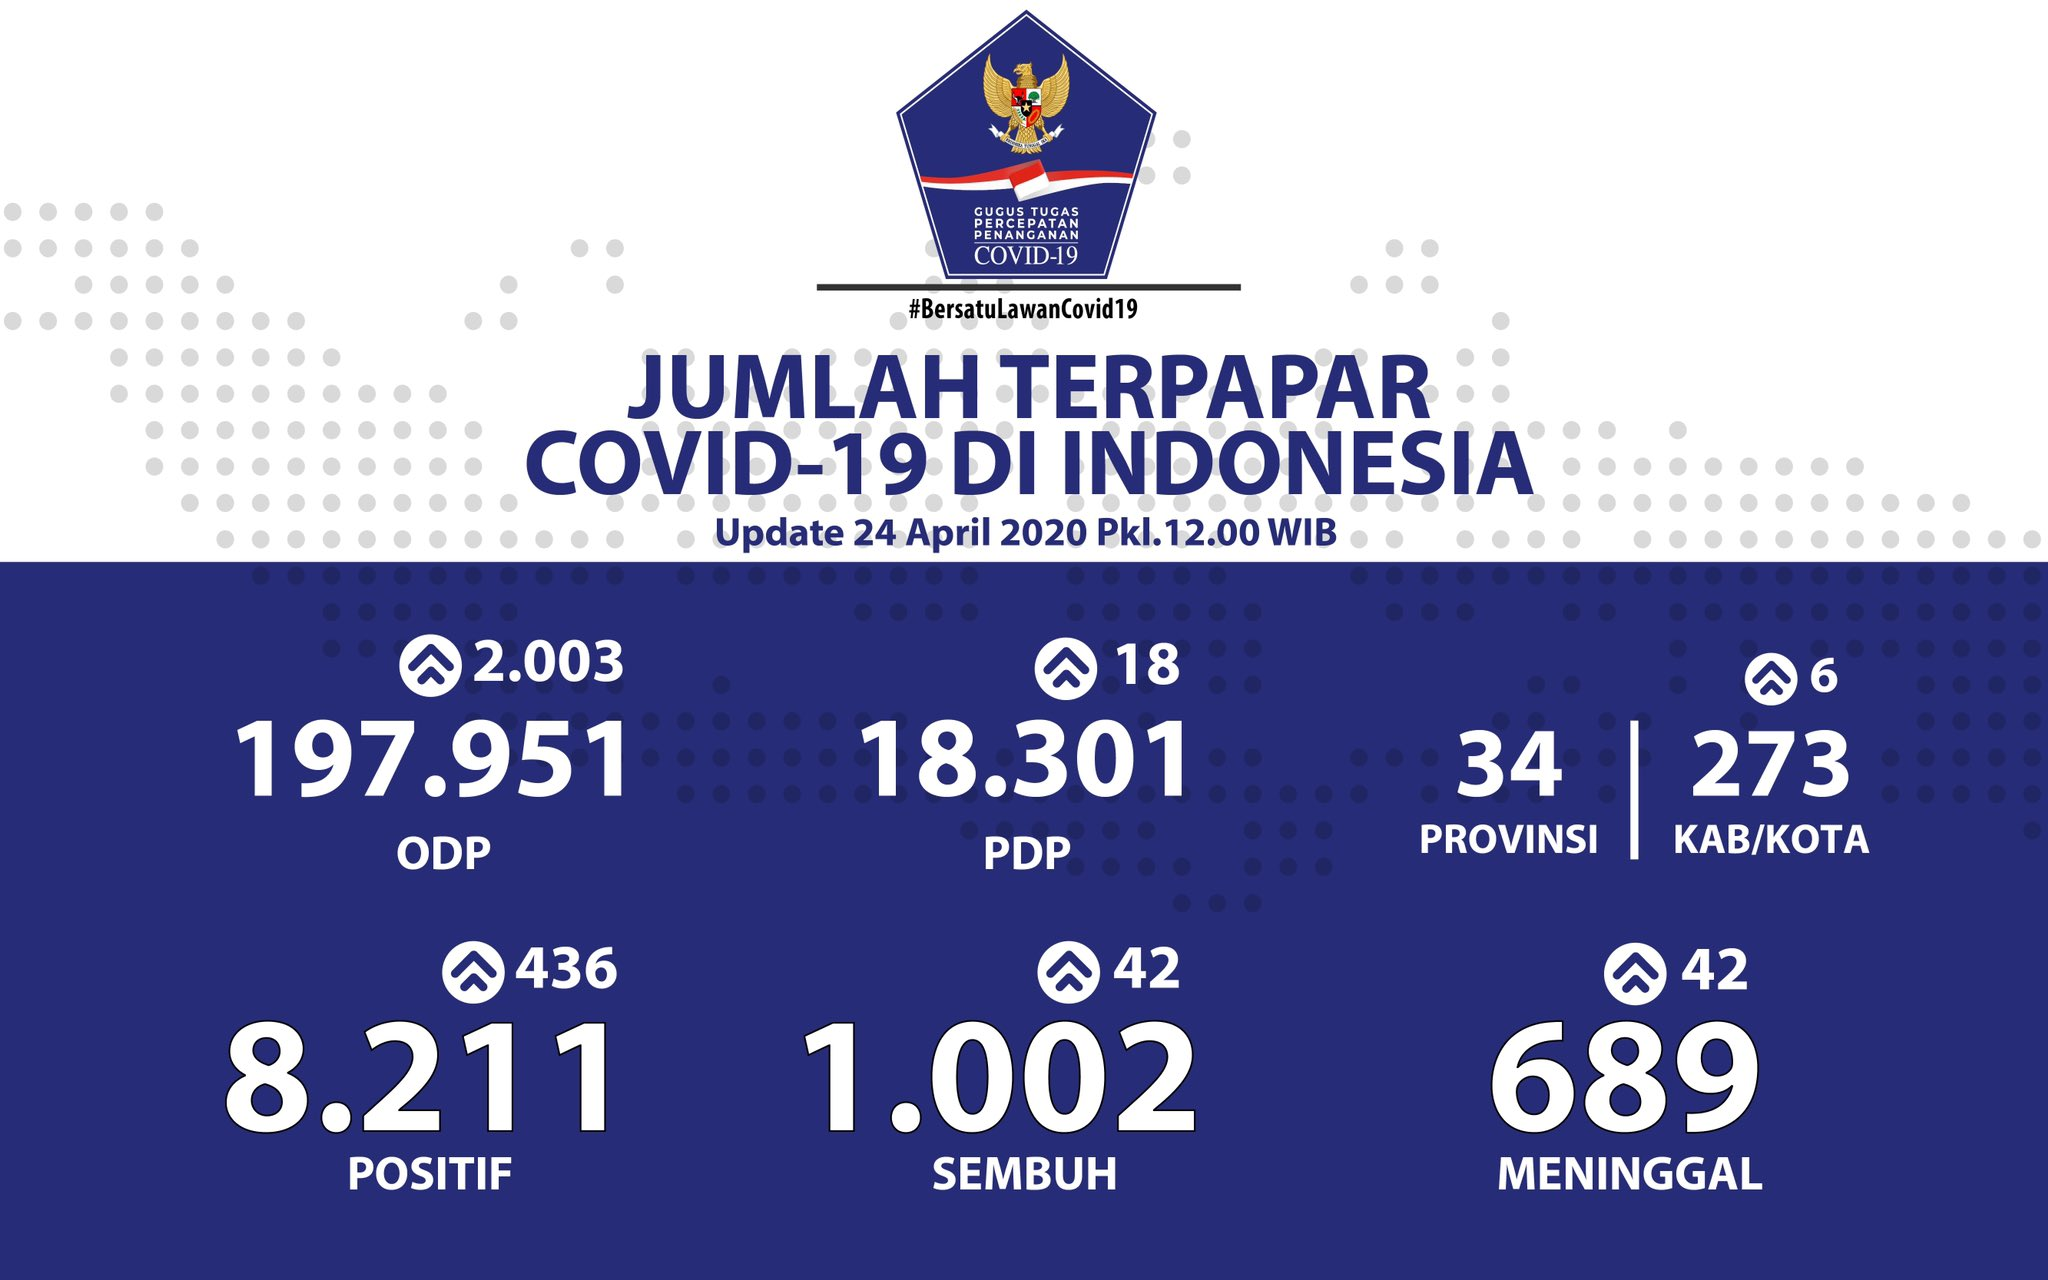 Update 24 April 2020 Infografis Covid-19: 8211 Positif, 1002 Sembuh, 689 Meninggal